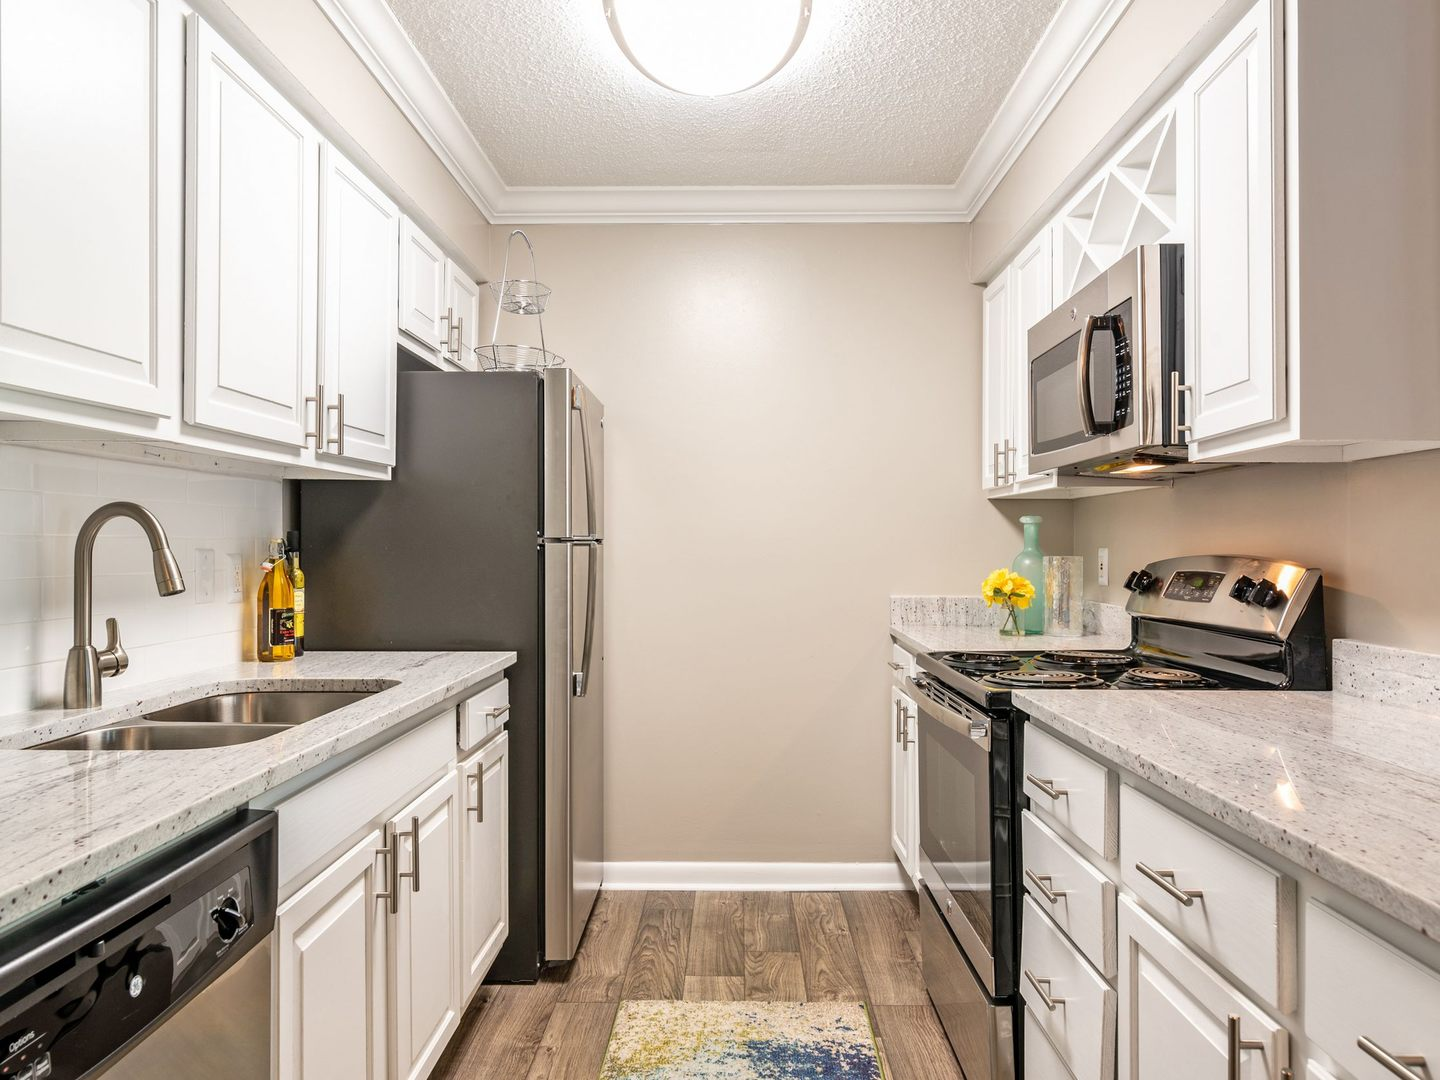 kitchen with granite countertops and white cabinetry.